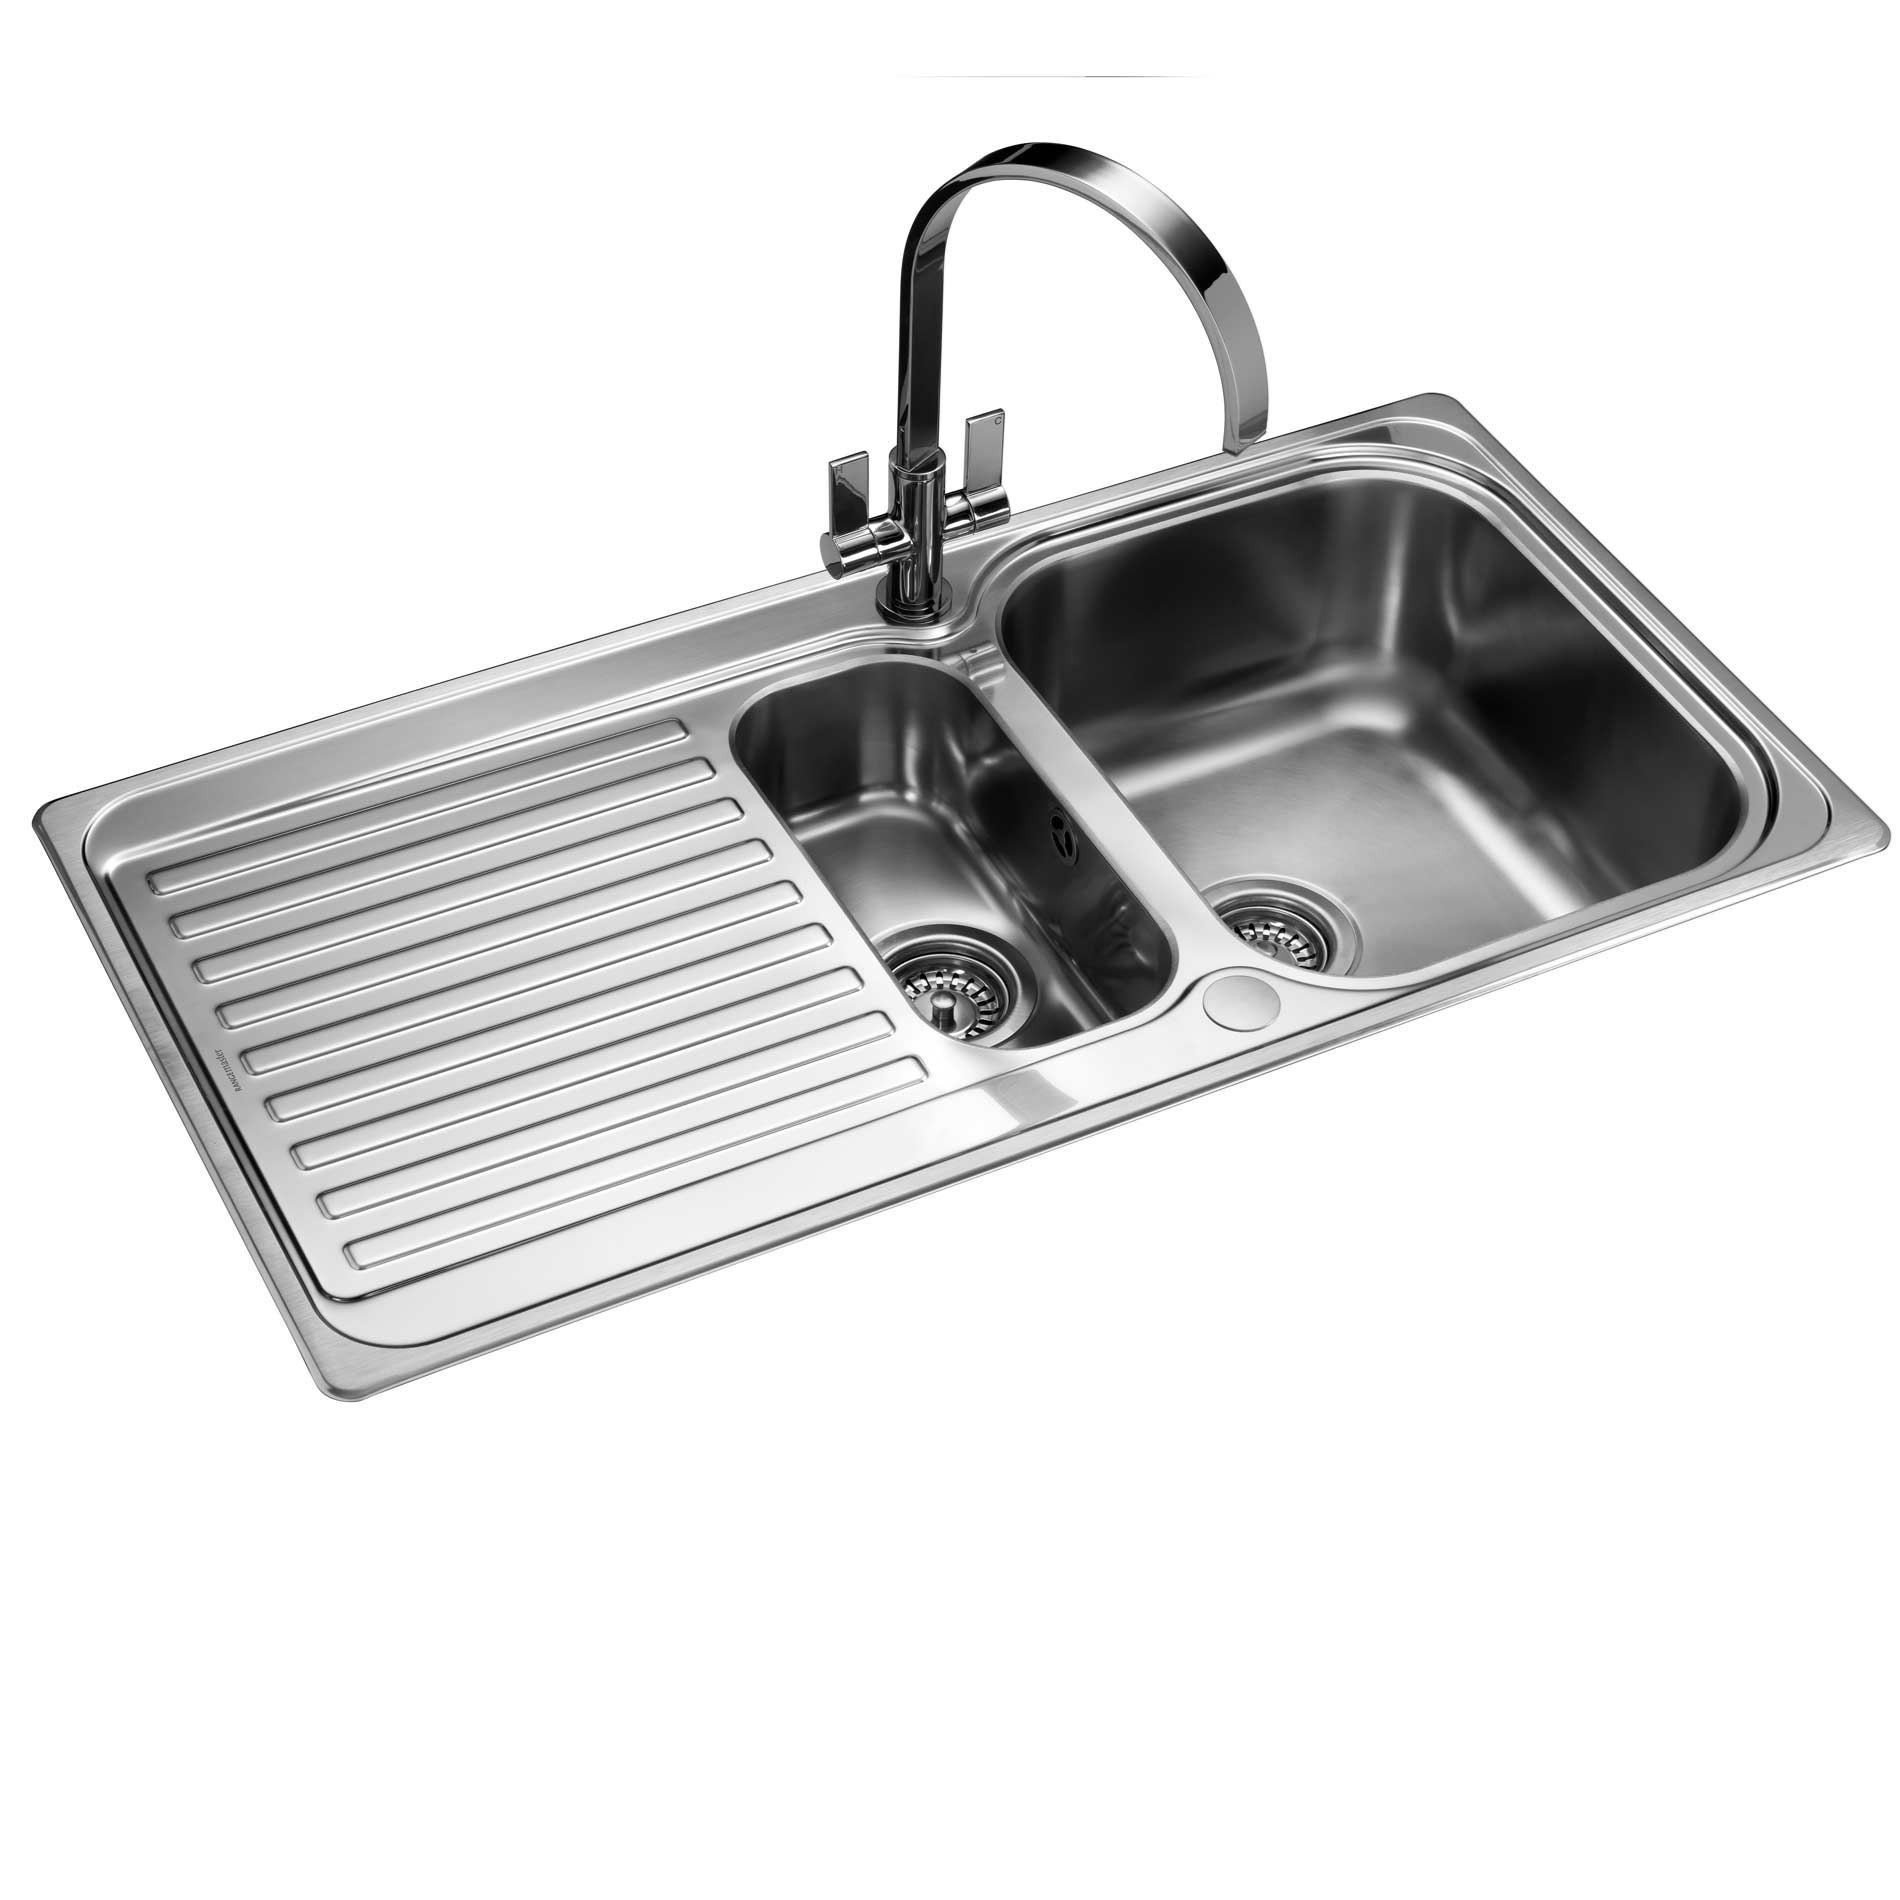 picture of sedona 1 5 sd9852 stainless steel sink rangemaster  sedona 1 5 sd9852 stainless steel sink   kitchen      rh   kitchensinksandtaps co uk